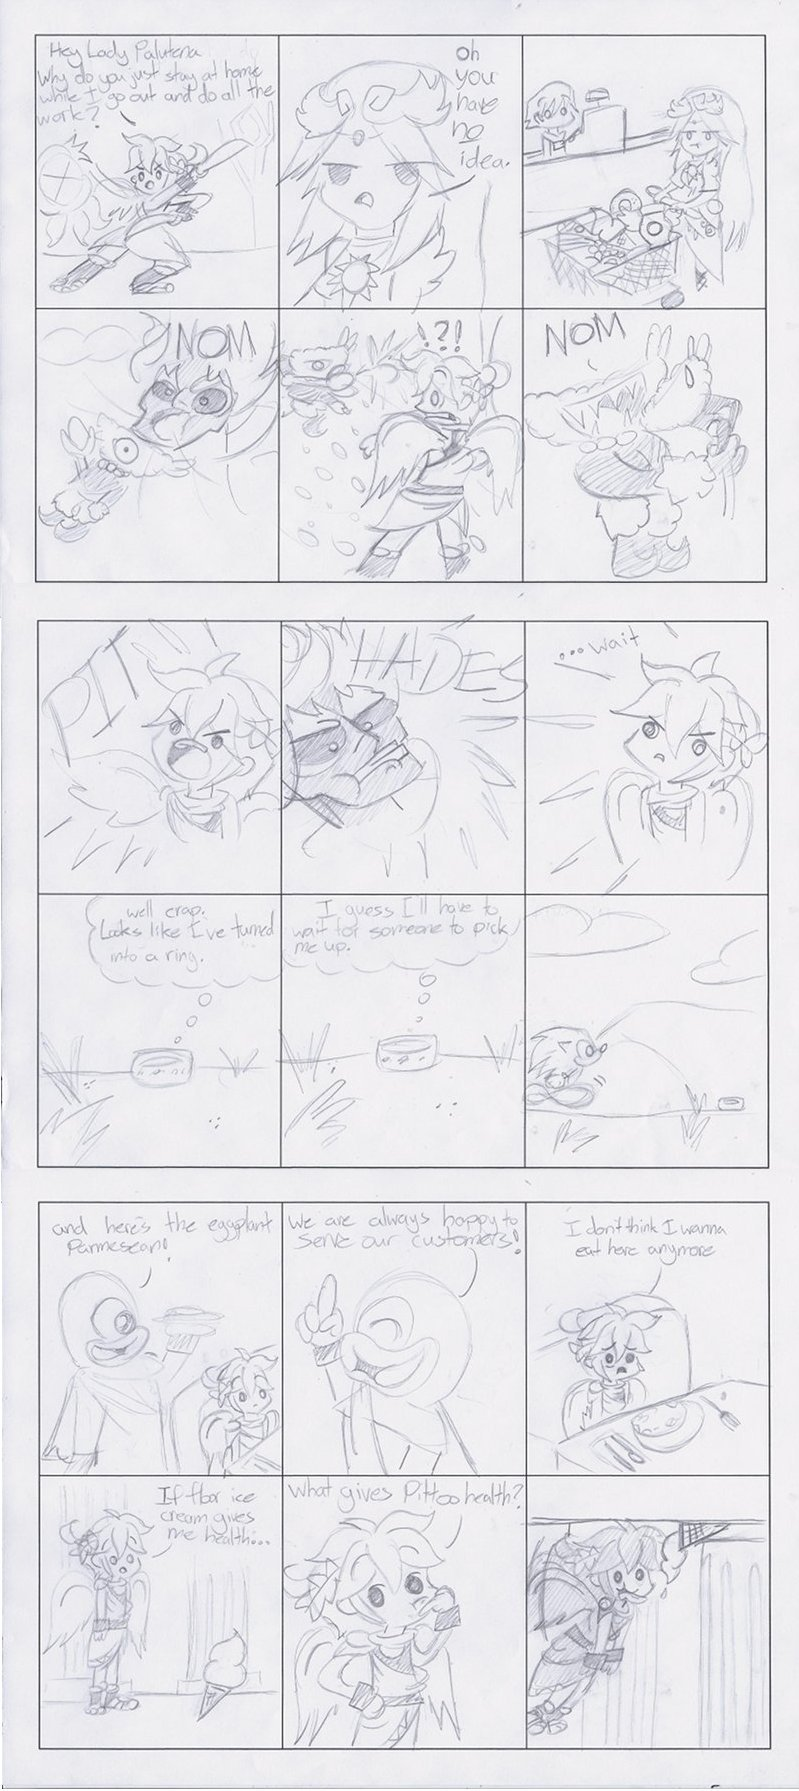 Kid Icarus funnies by Chihuahuadragon